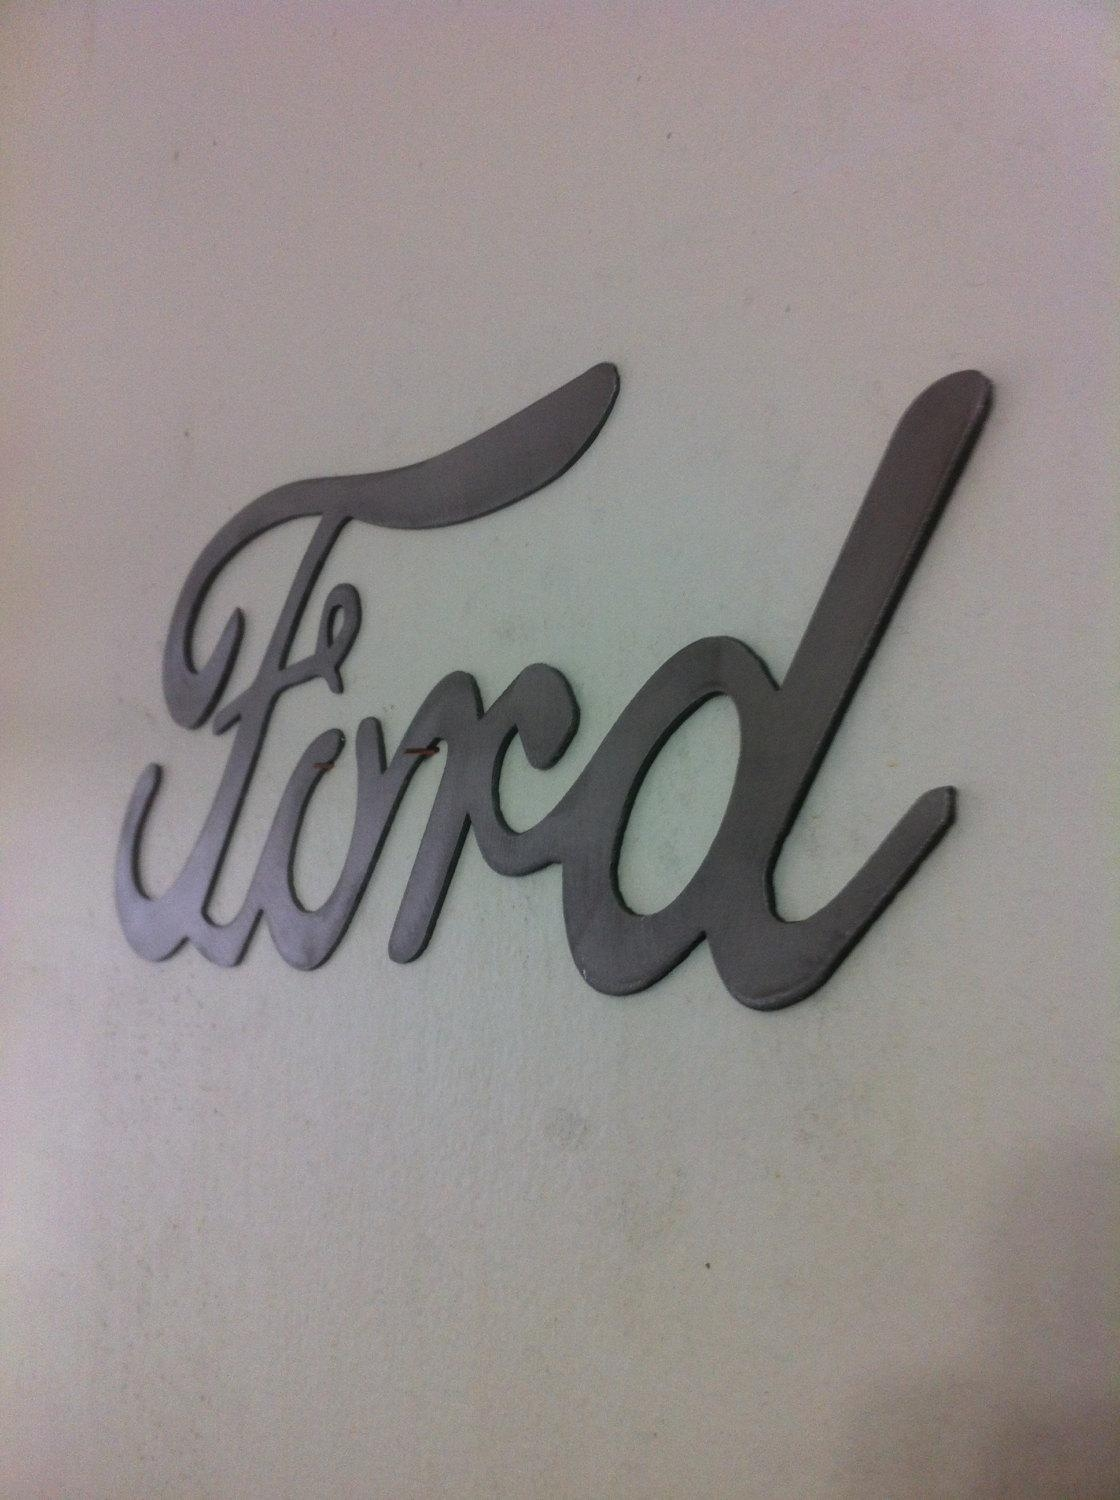 Ford Cursive Metal Wall Art Sign With Regard To Ford Mustang Metal Wall Art (View 17 of 20)